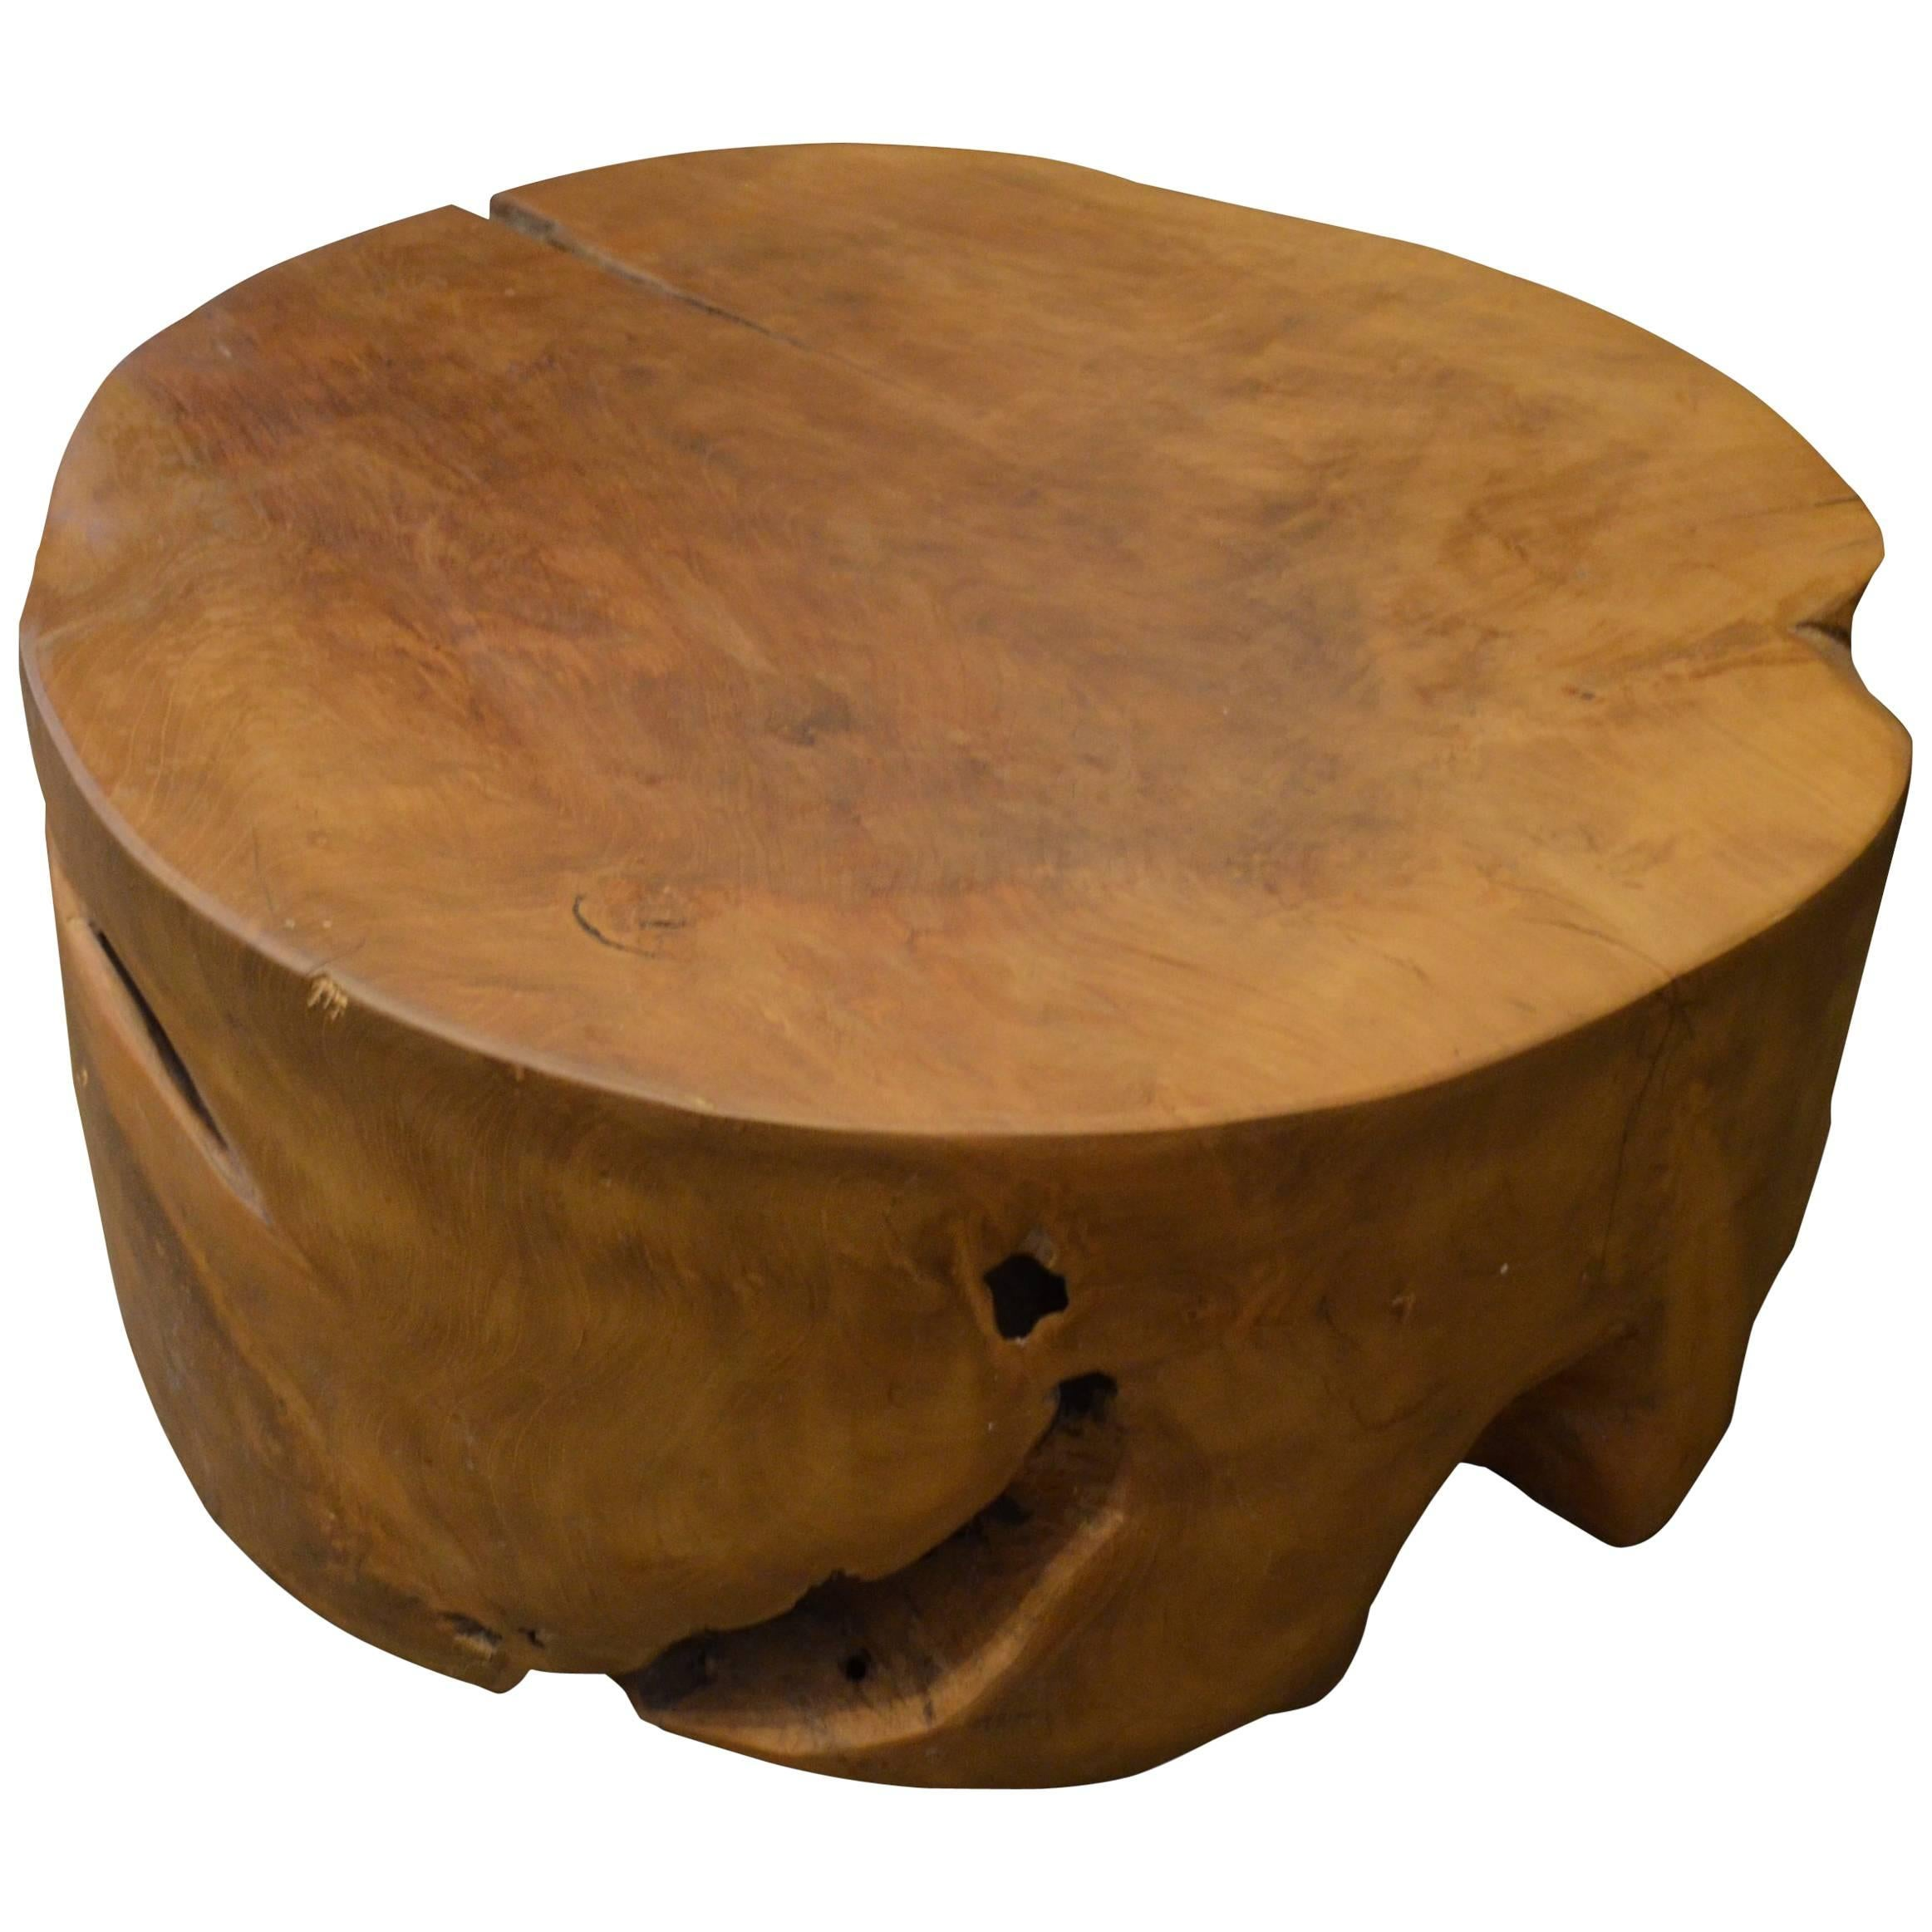 Petrified Wood Side Table Side Table Round Coffee Table Round